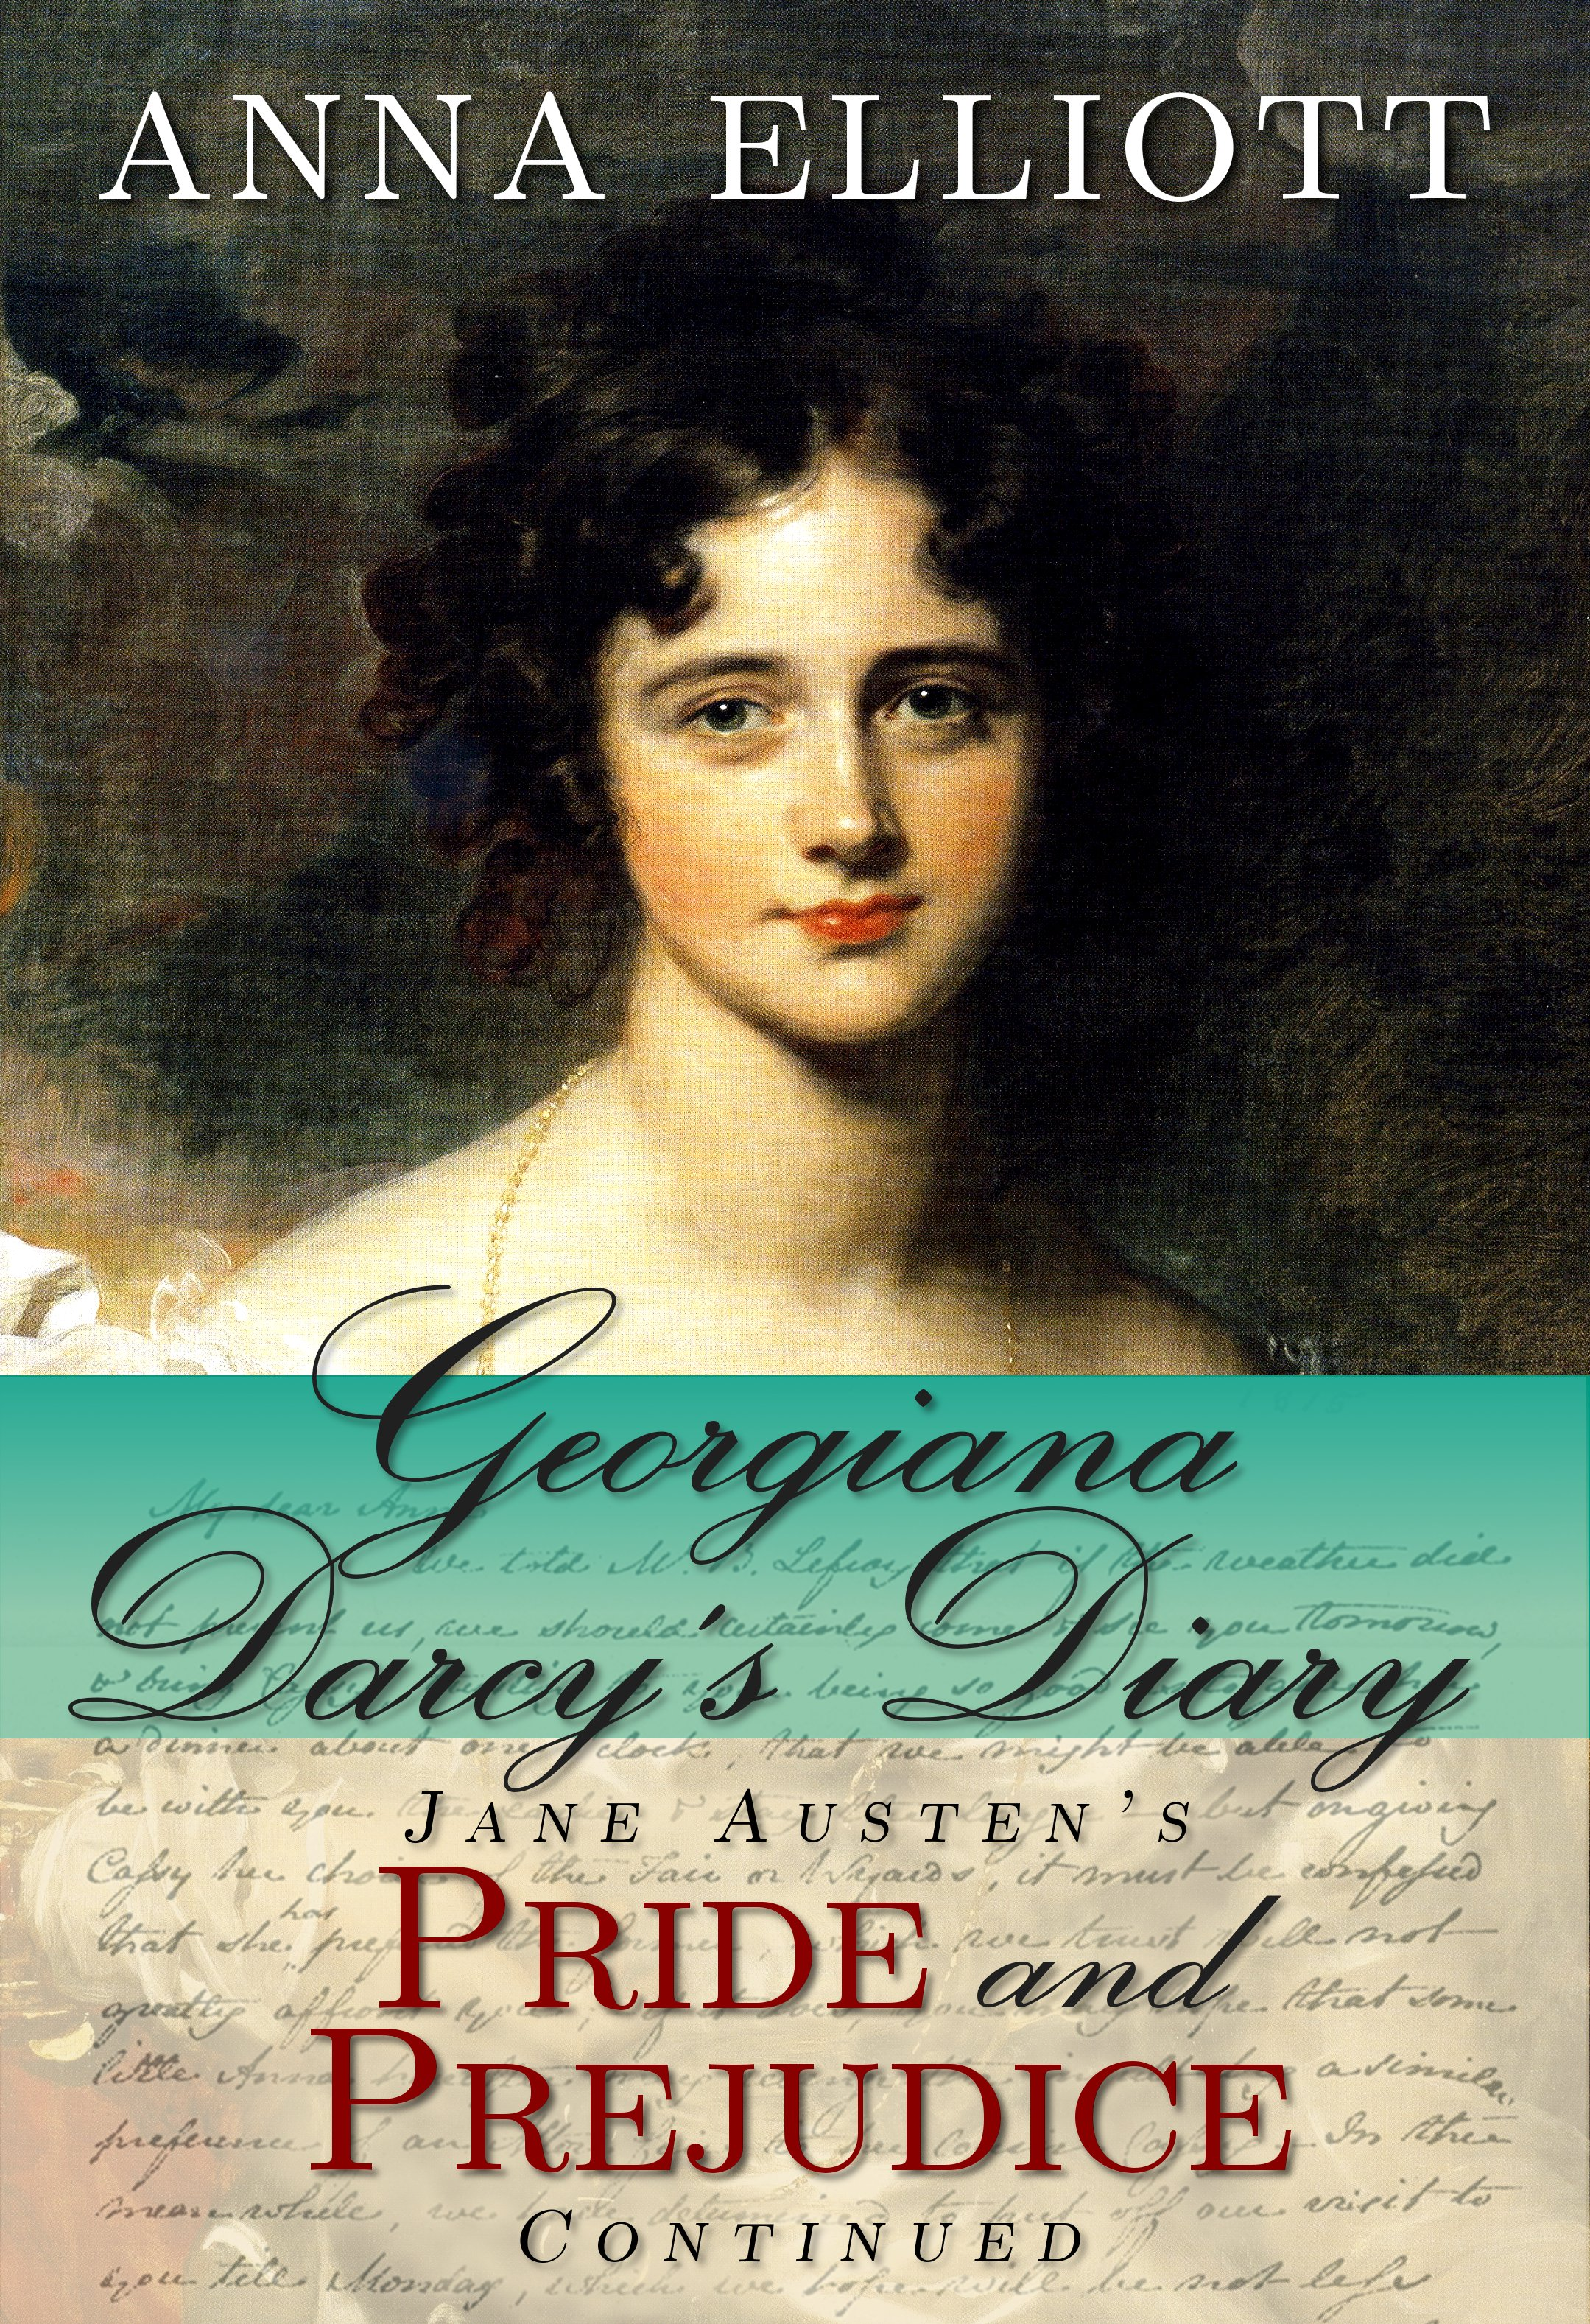 a contemporary view of the novel pride and prejudice by jane austen Reading of letters to alice changes the modern responder's understanding of pride and prejudice discuss with reference to both texts fay weldon's letters to alice on first reading jane.